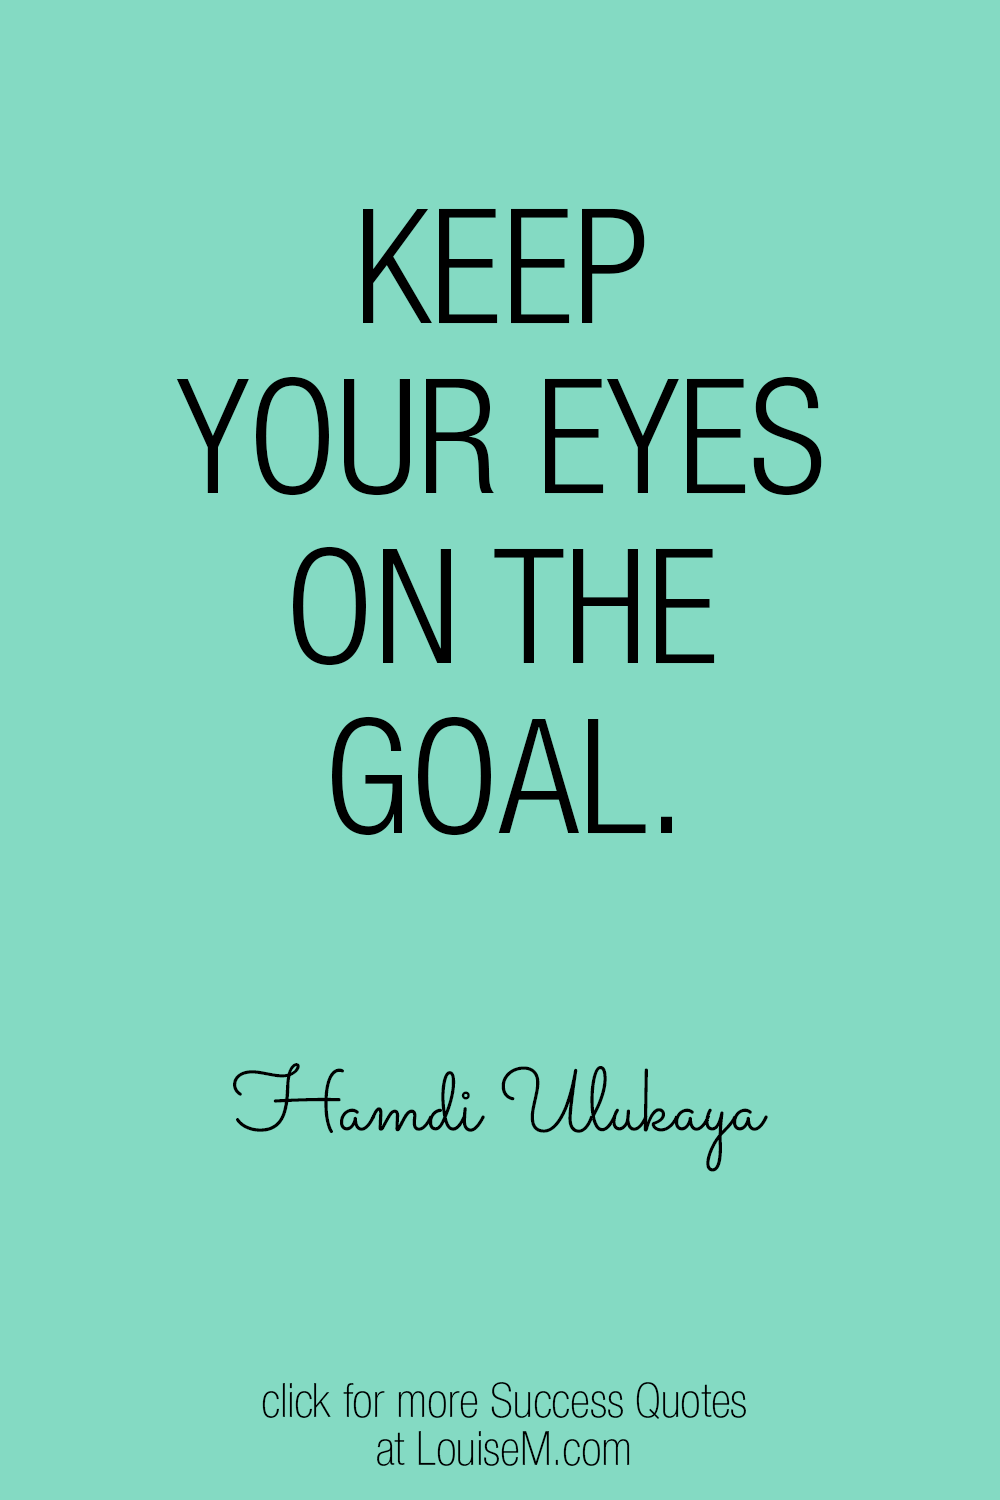 keep your eyes on the goal quote graphic